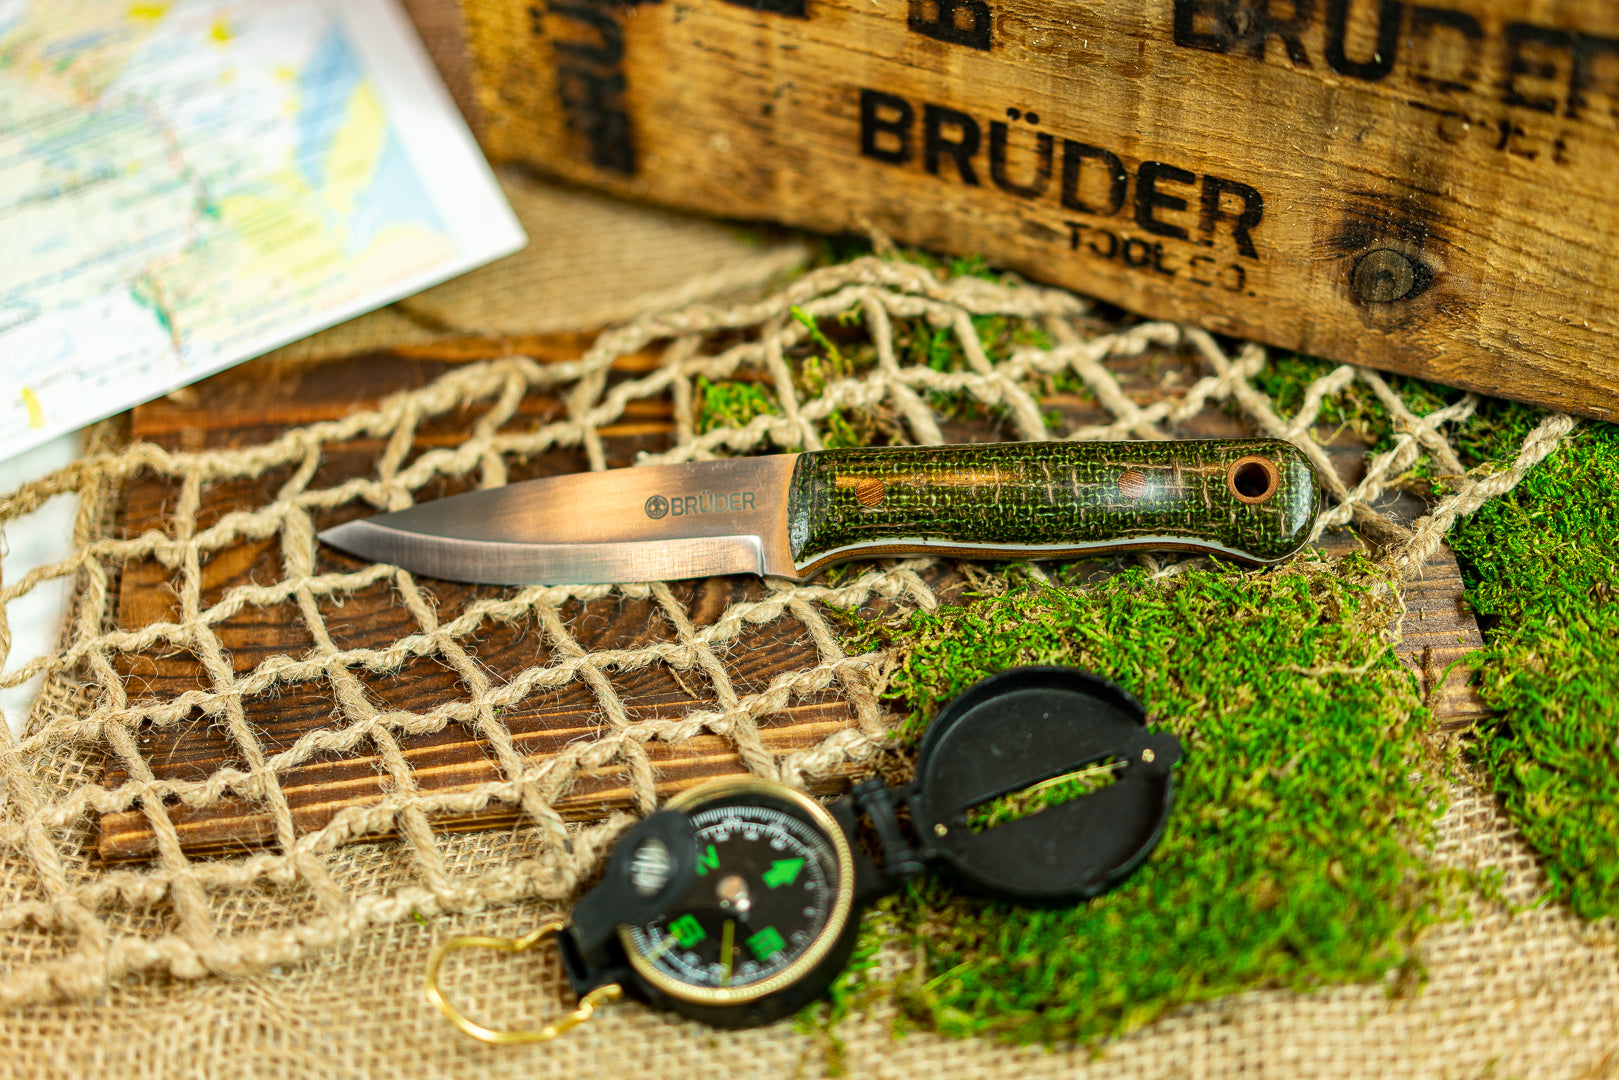 Brüder Alger Bushcraft Knife - Brown/Green Burlatex